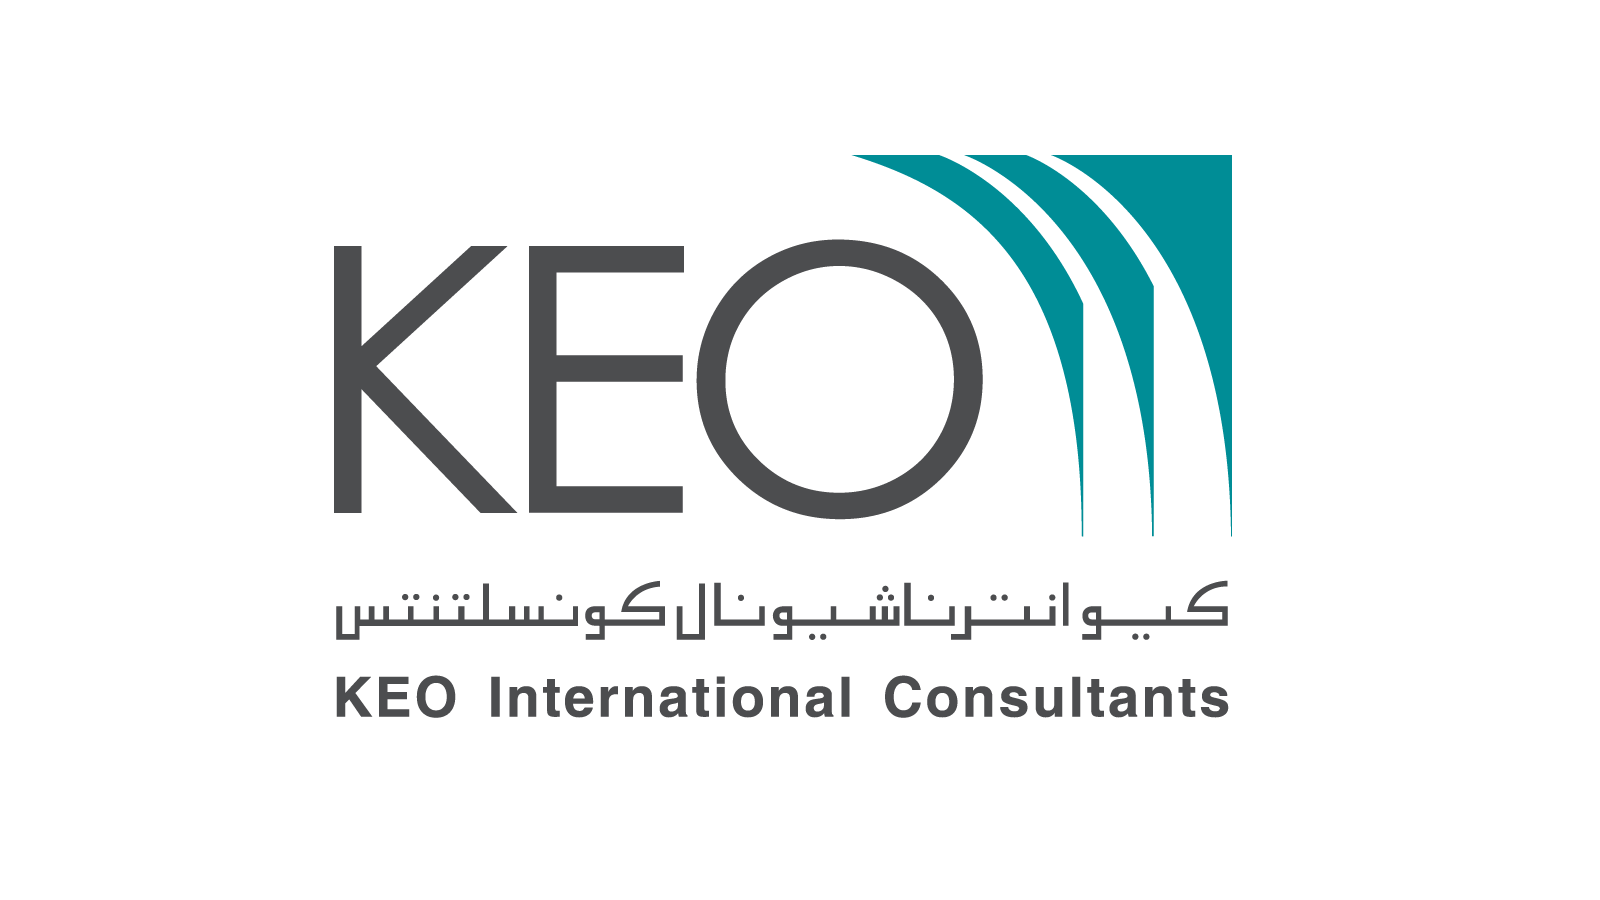 KEO International Consultants logo